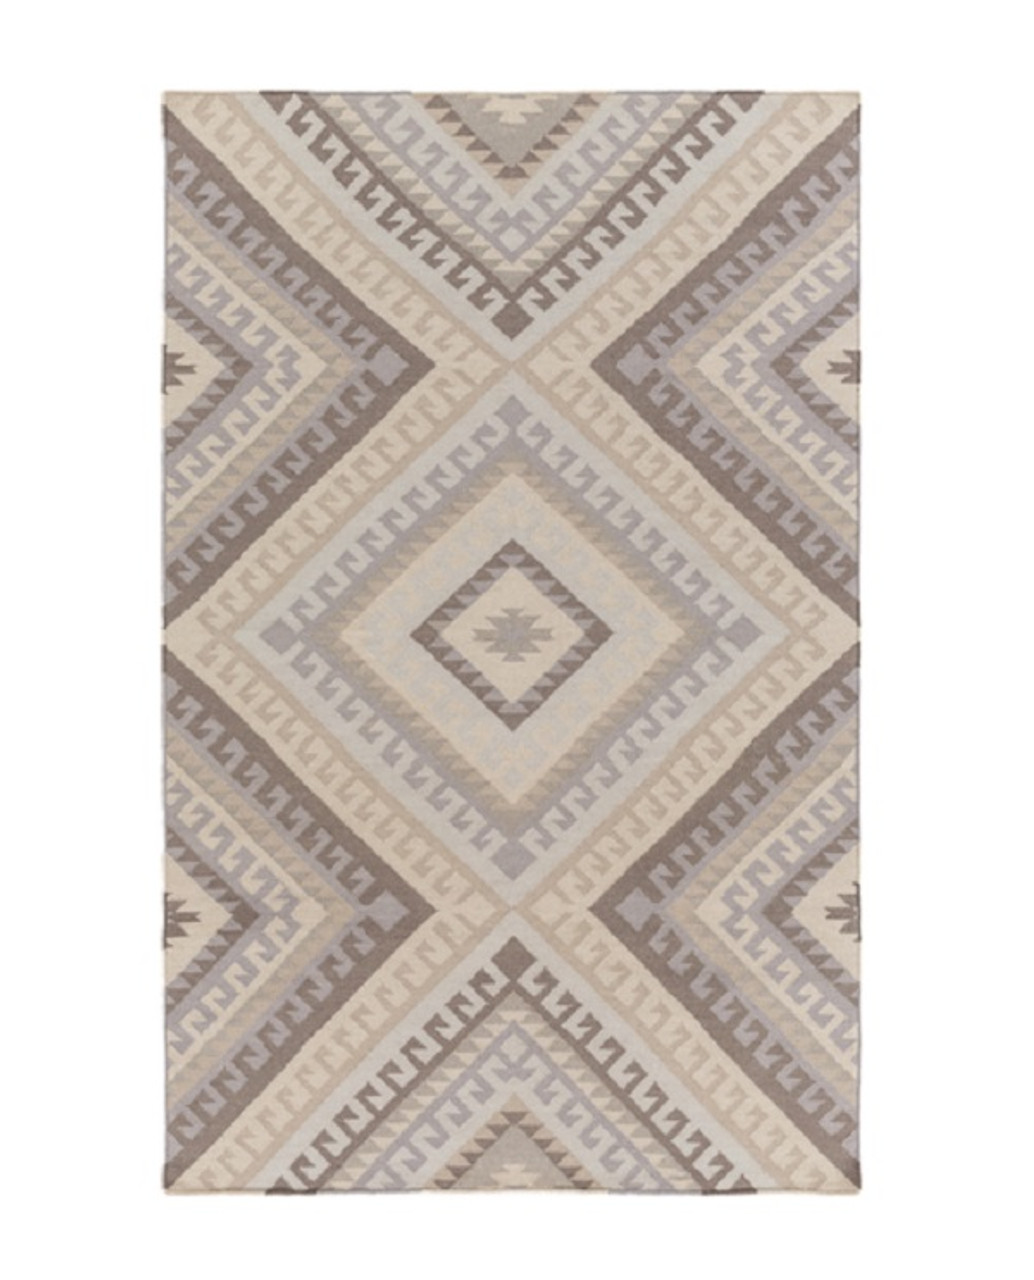 Christmas Area Rugs 8 X 10.8 X 10 Linear Roots Shades Of Beige Brown And Gray Hand Woven Area Throw Rug 32214045